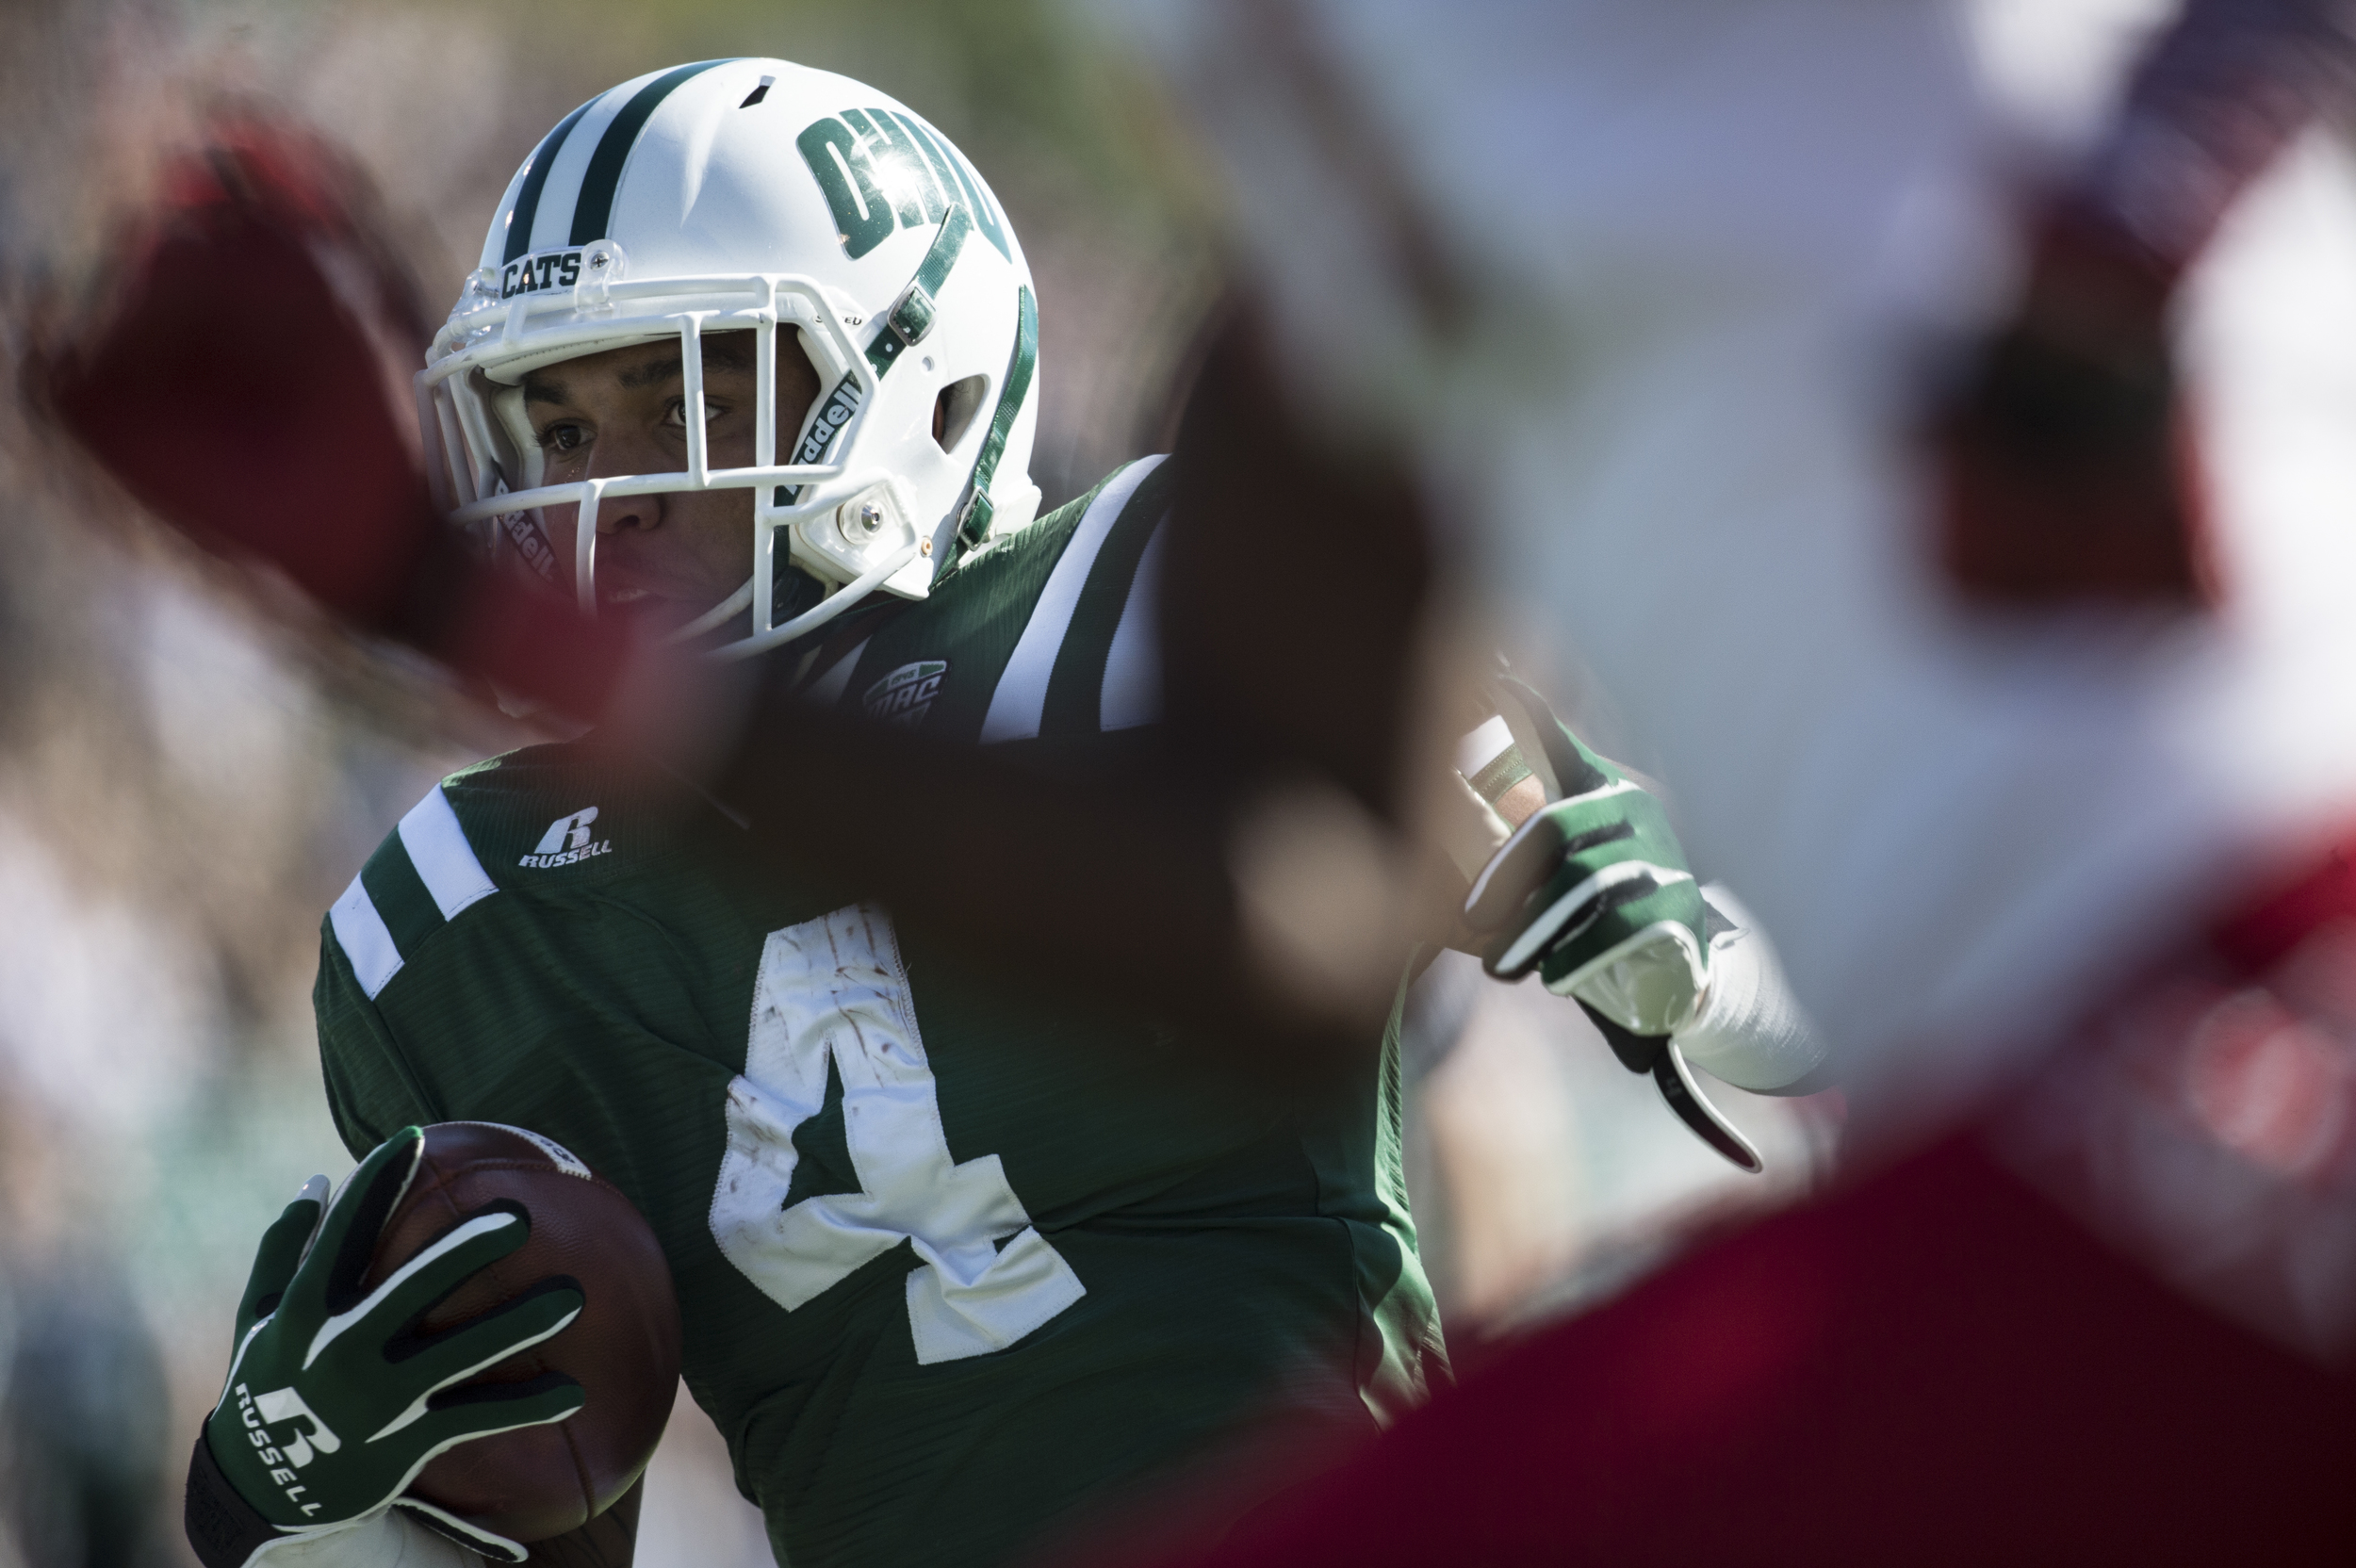 Ohio University redshirt freshman running back Papi White (#4) carries the ball for a 36 yard gain against OU's rival Miami University on Saturday, Oct. 10,2015 at Peden Stadium in Athens, Ohio. White had a career-high 75 receiving yards. The Bobcats defeated the Red Hawks 34-3 on homecoming weekend.